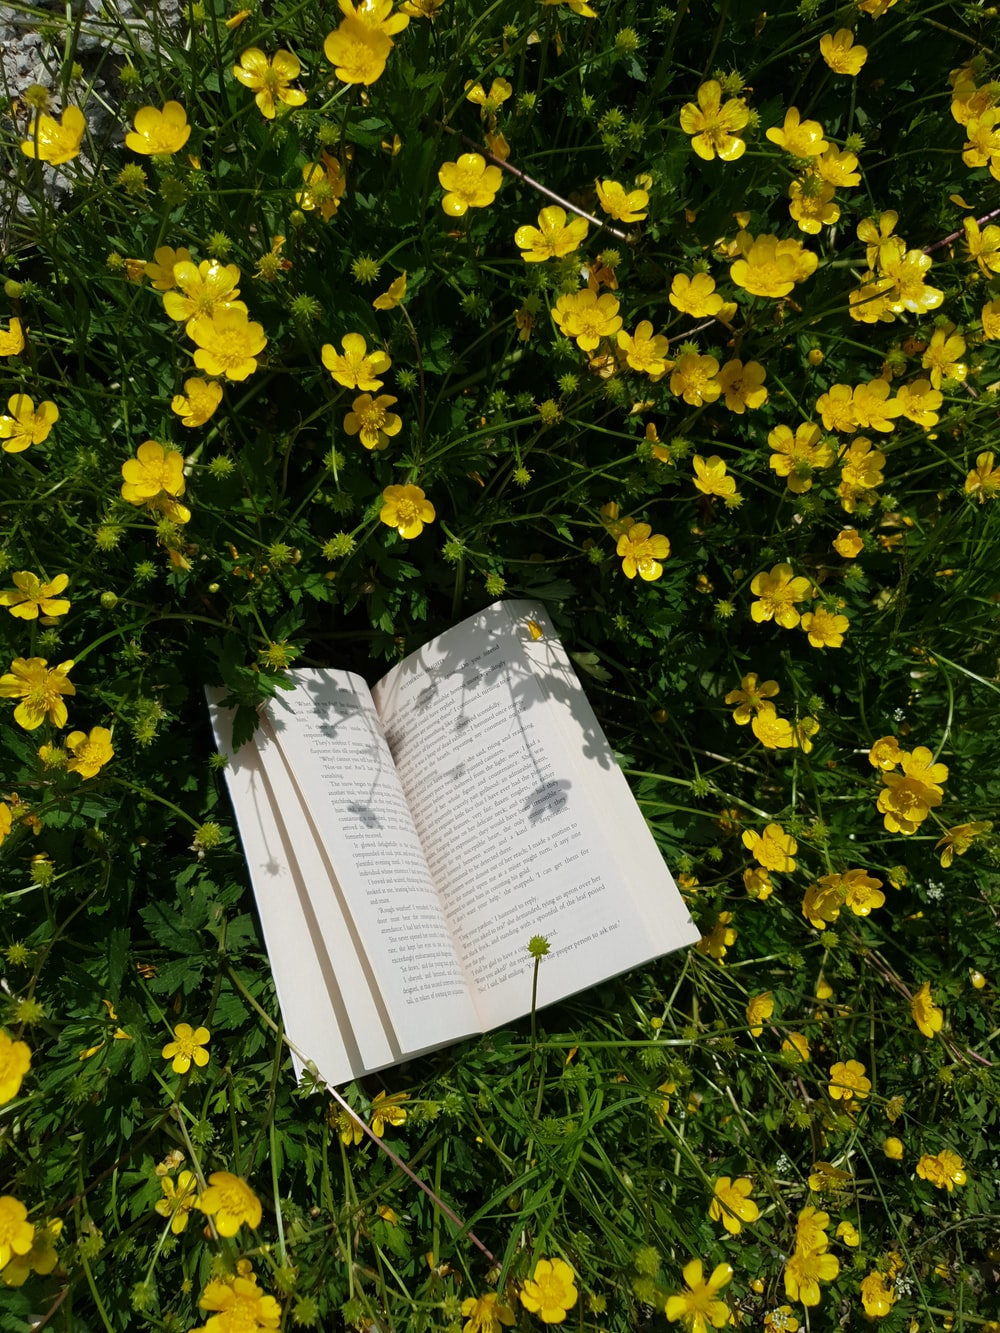 white book on yellow flowers